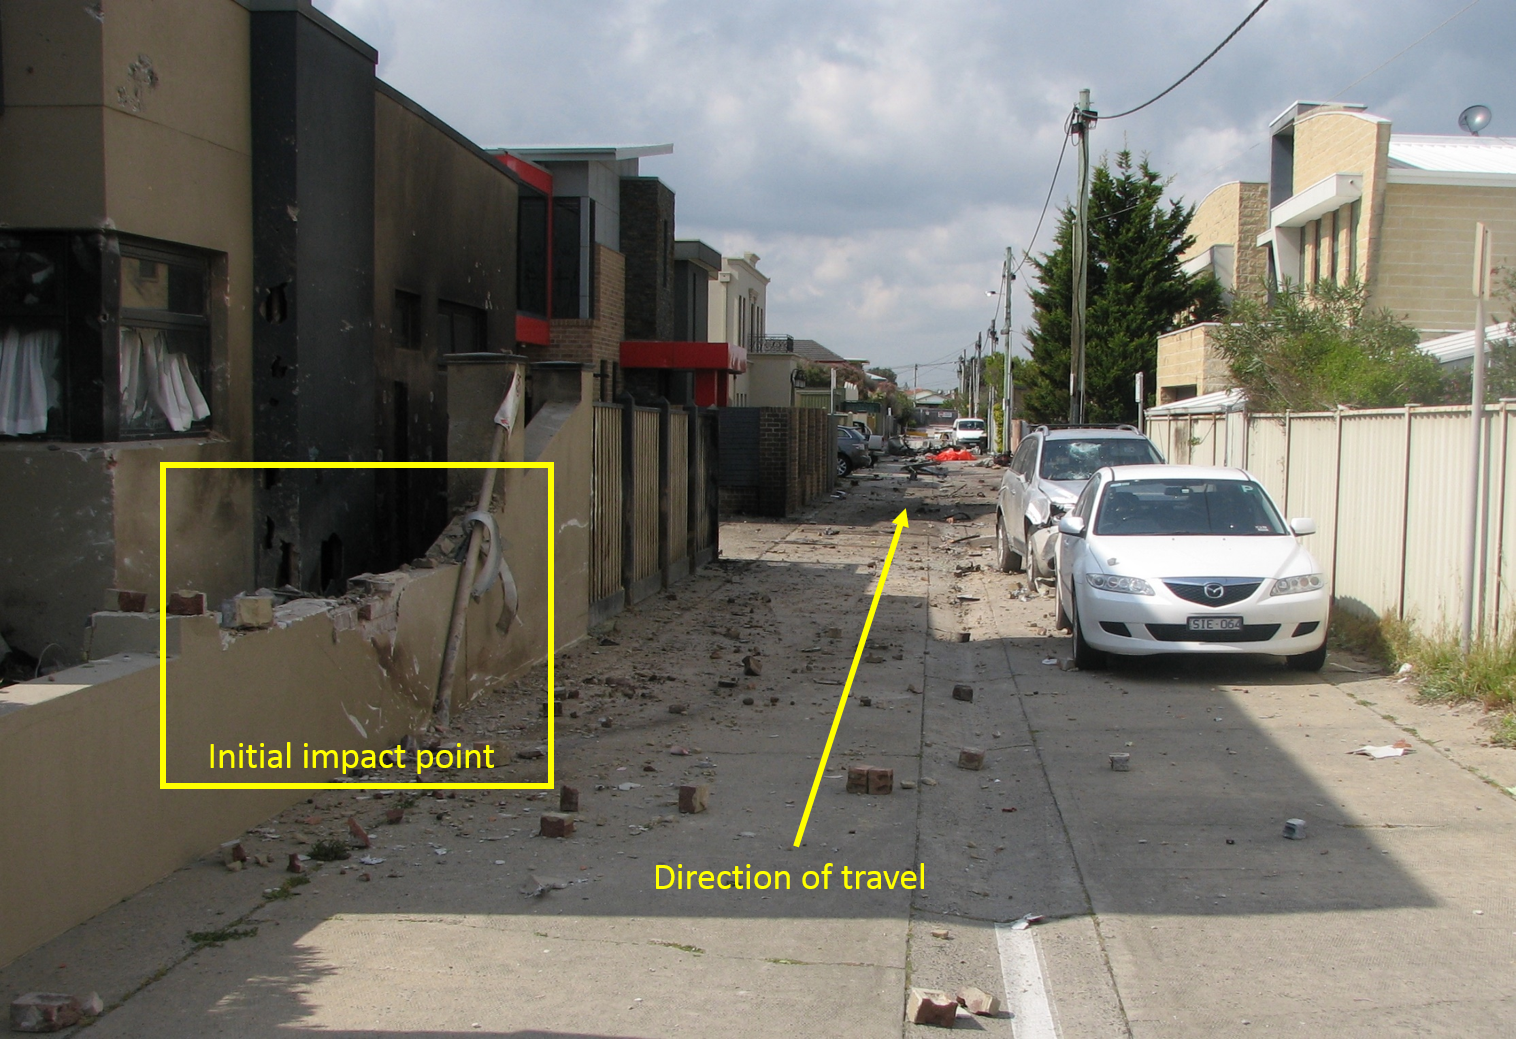 Figure 1: Accident site from the initial impact point on the left, looking south down the laneway